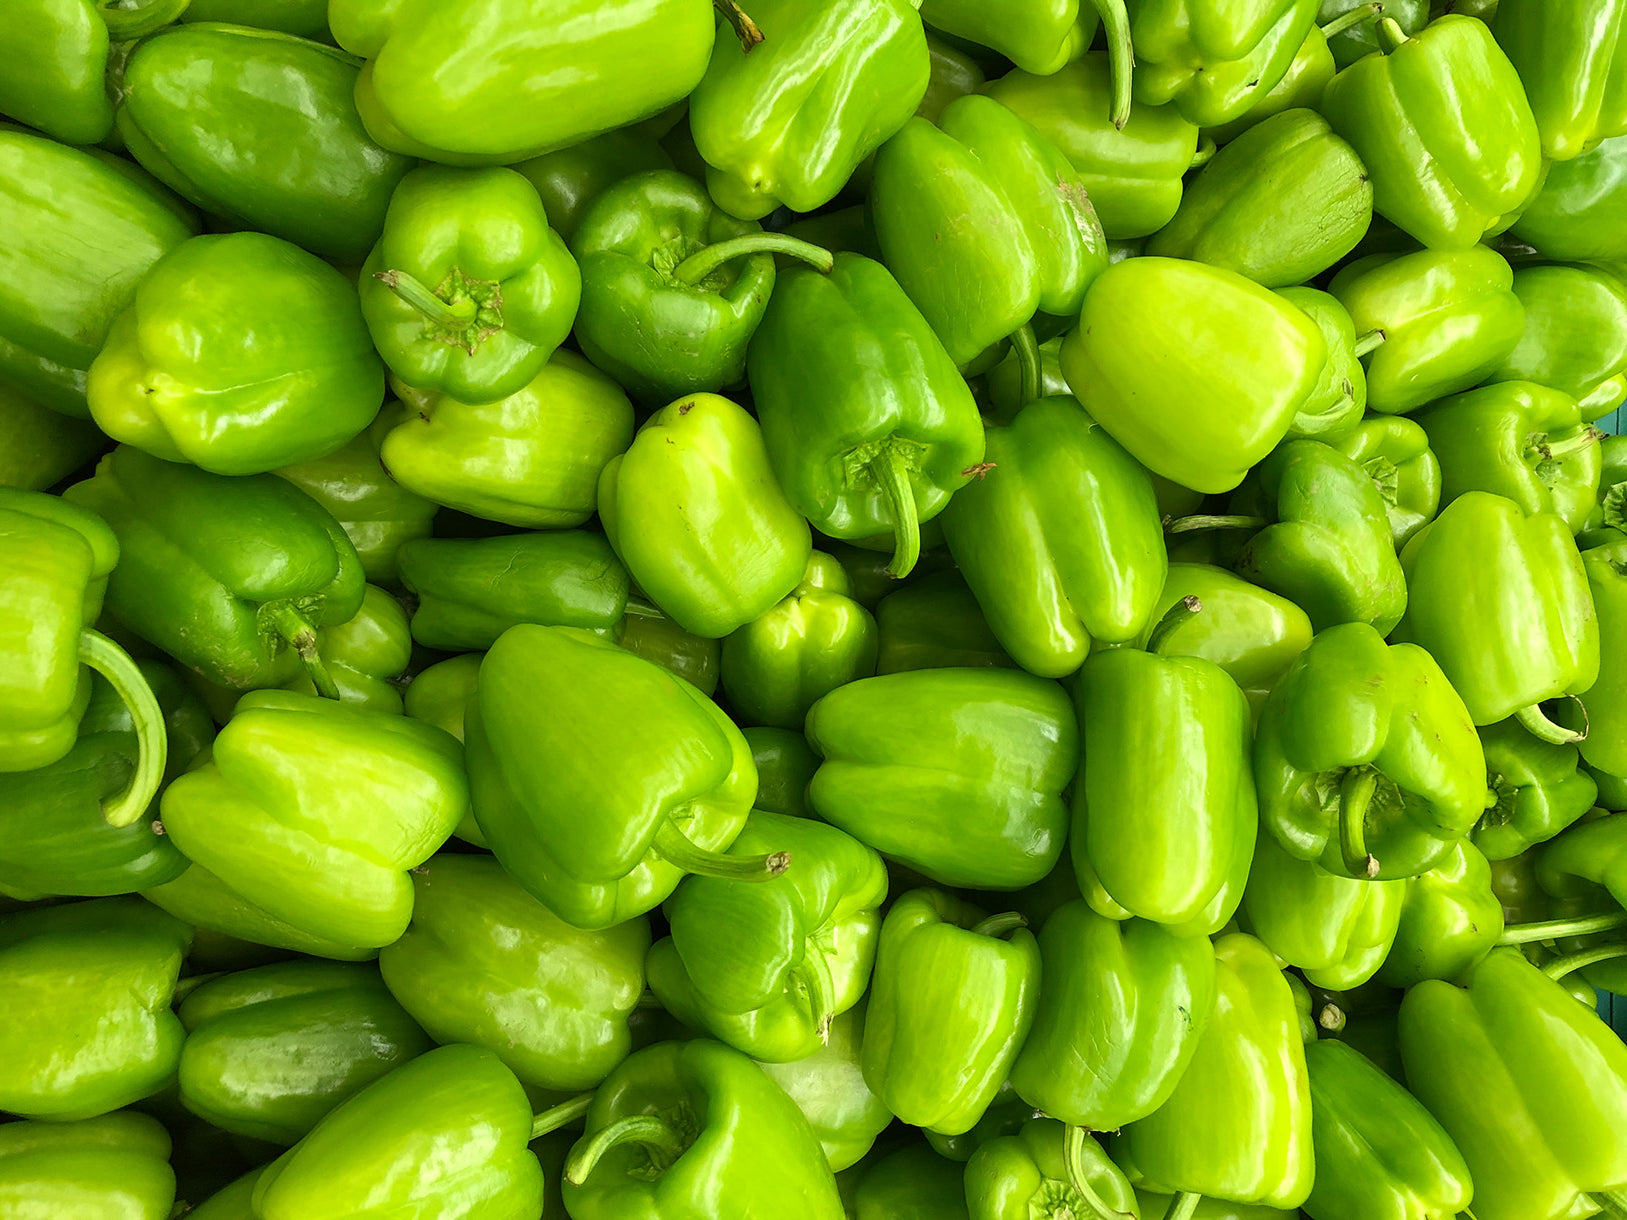 buy organic green pepper online london uk